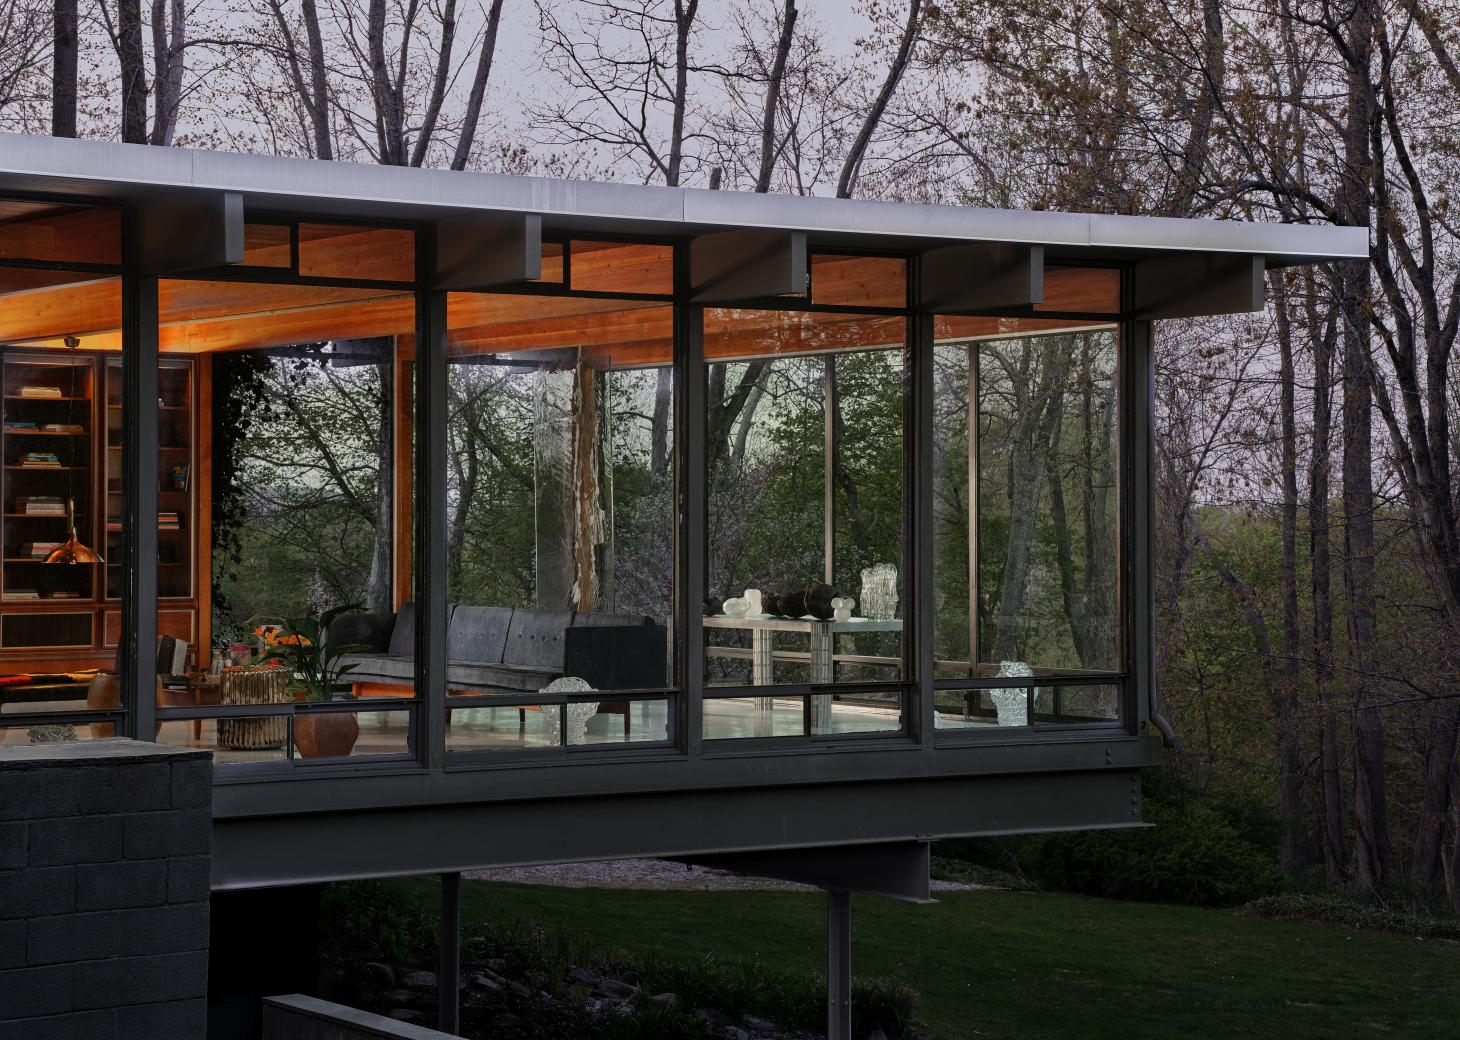 Exterior shot of glass and steel modernist house by Gerald Luss